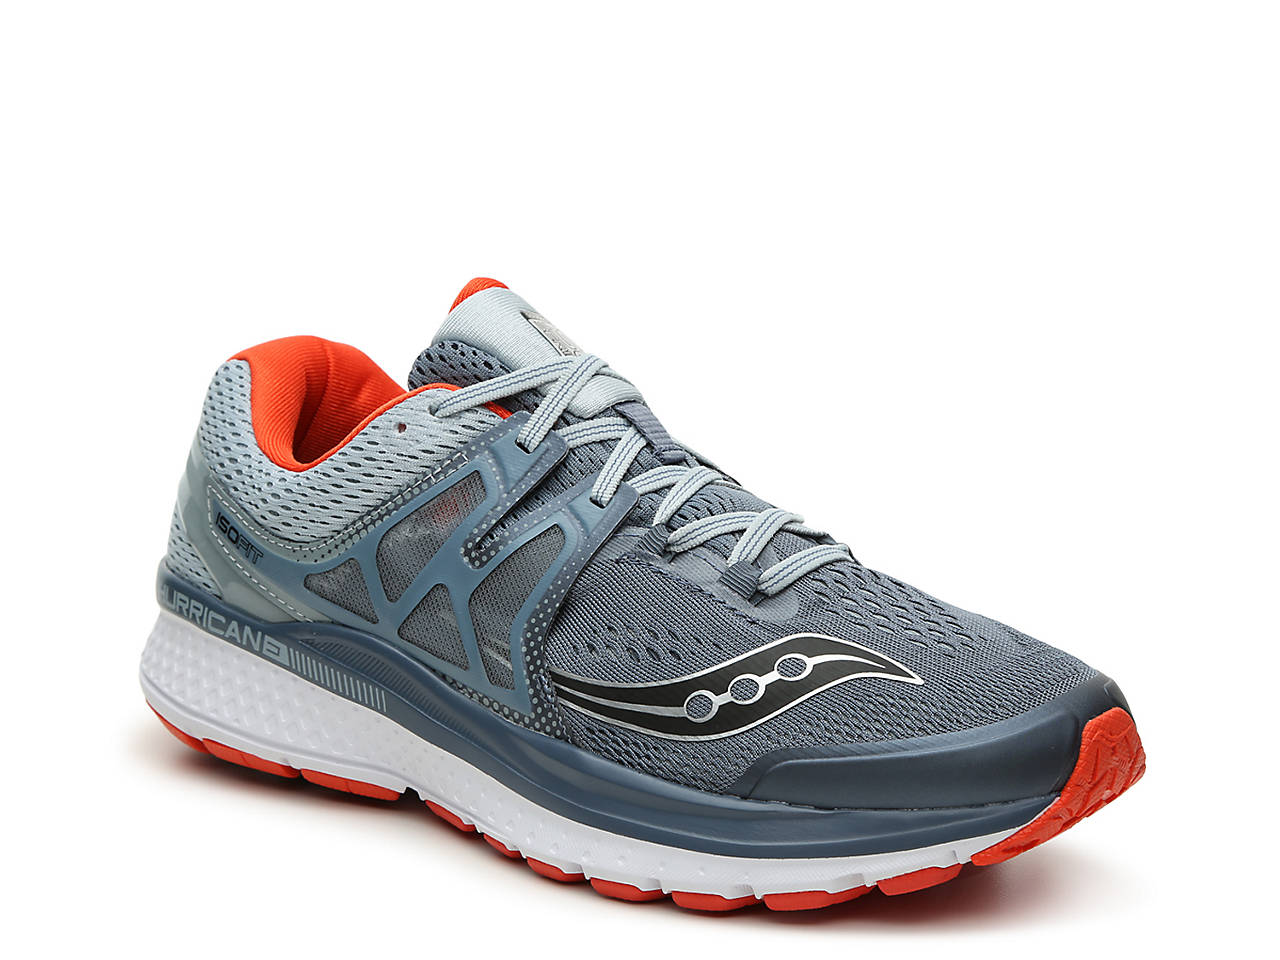 27bba456 Hurricane ISO 3 Performance Running Shoe - Men's